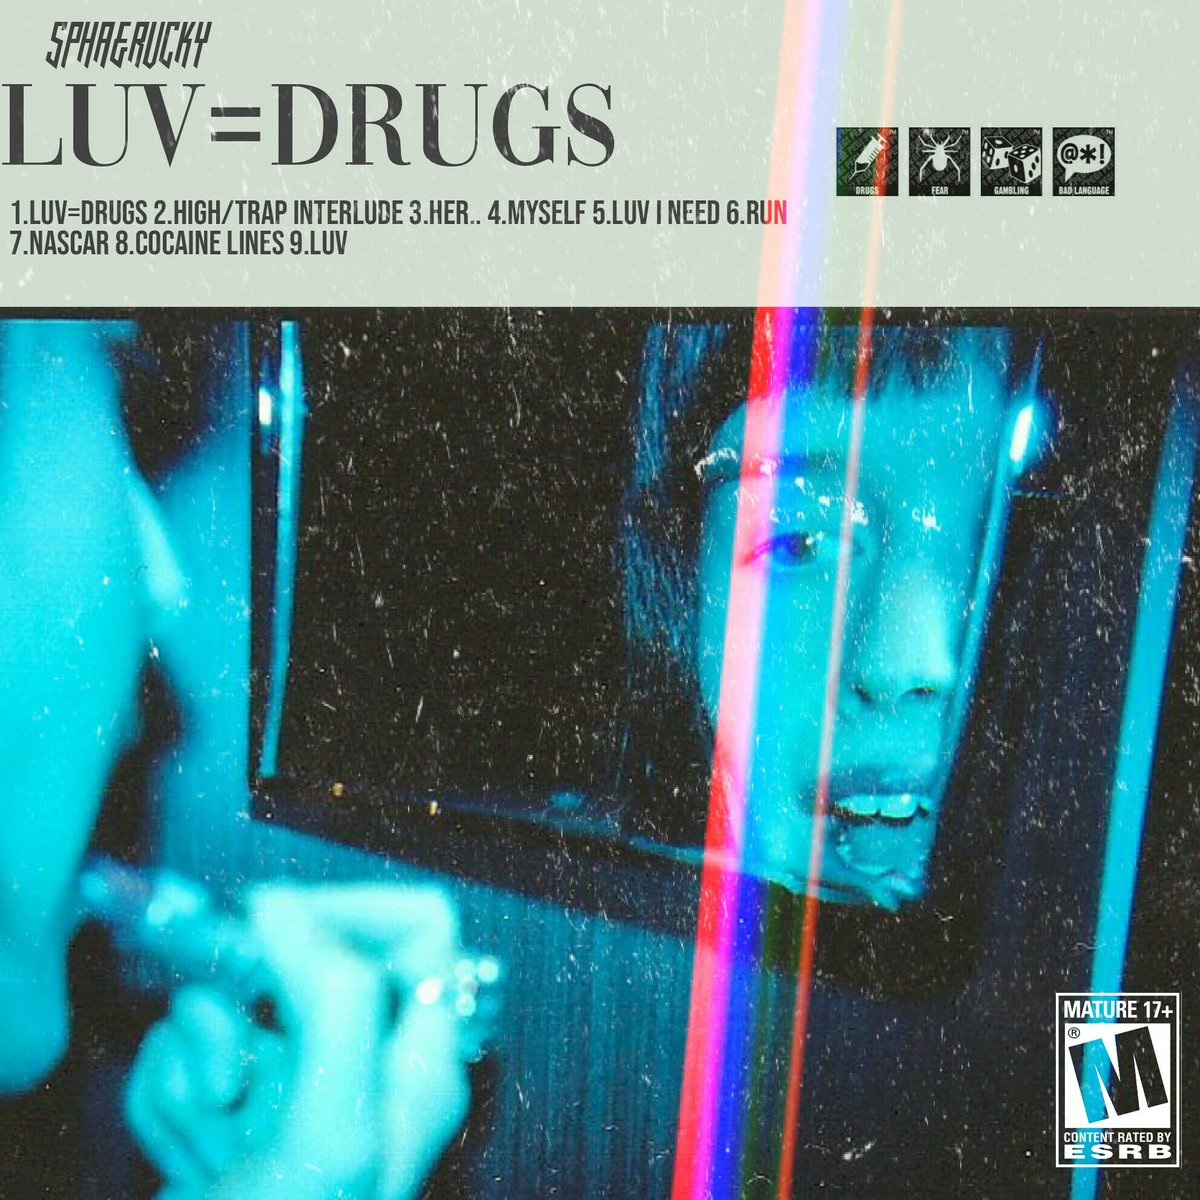 spha & rvcky Listen To This Compelling 'LUV=DRUGS' EP By SPHA & RVCKY DyQohBZWkAIlnaW